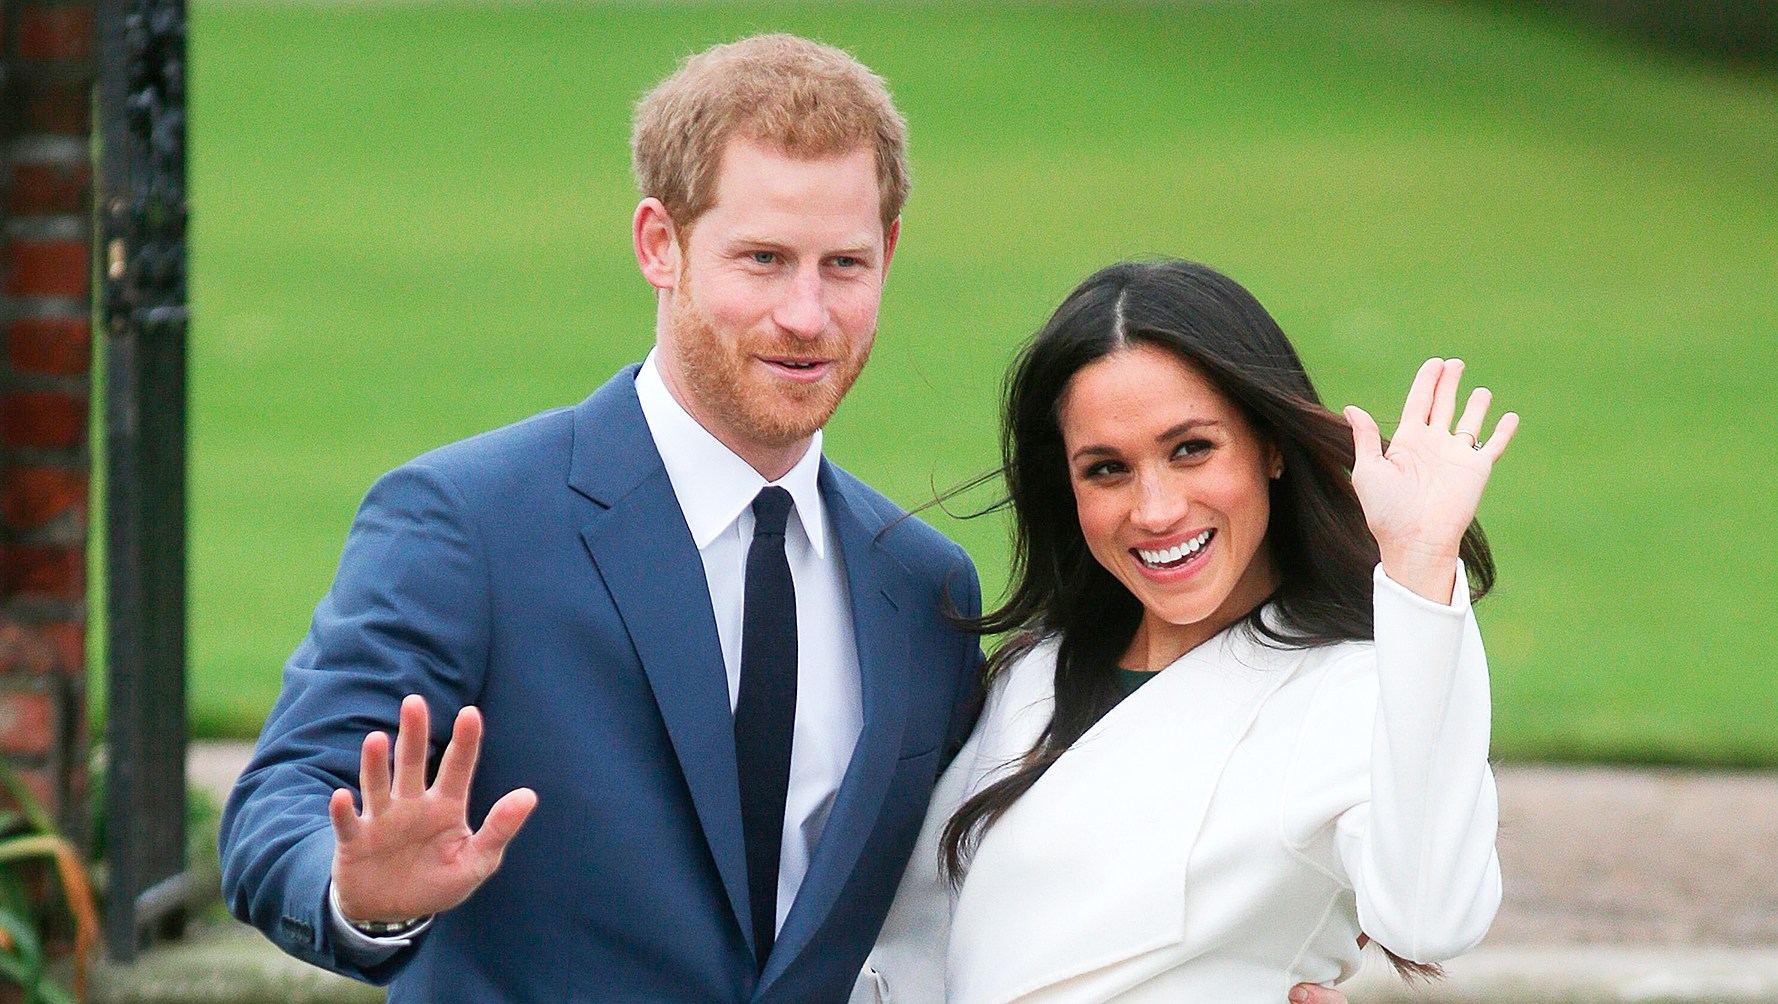 Prince Harry Meghan Markle How To Watch The Royal Wedding